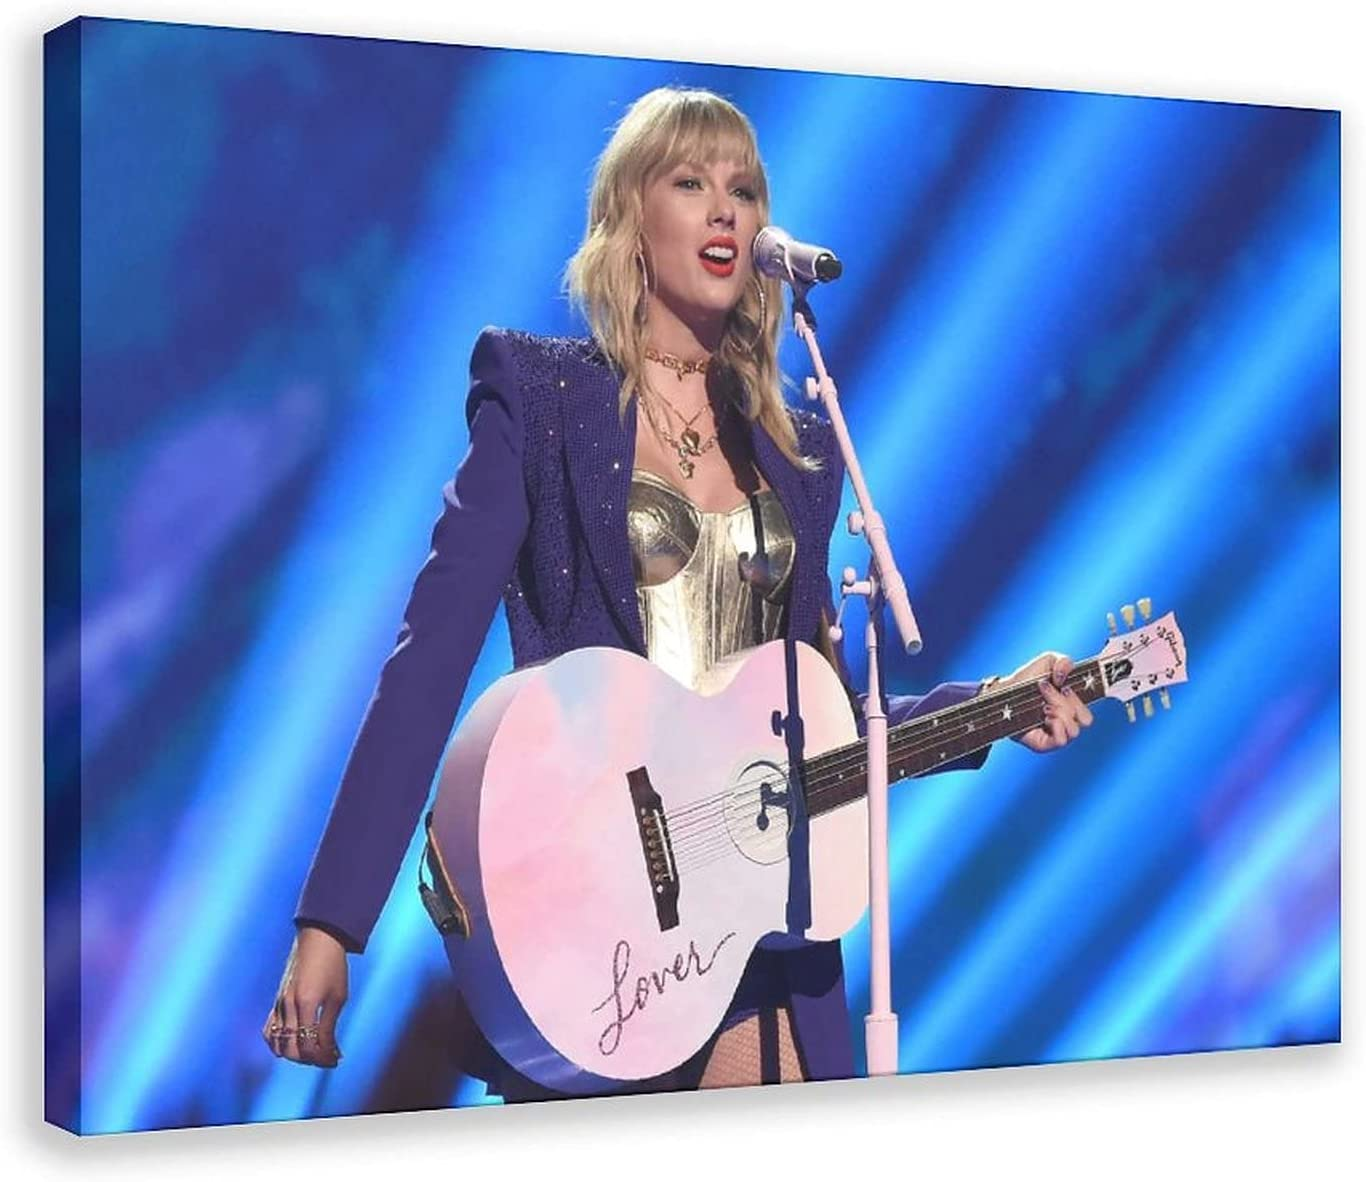 Famous Singer Beauty Taylor Swift Idol Canvas Poster Pop 37 Post San Diego Mall Safety and trust